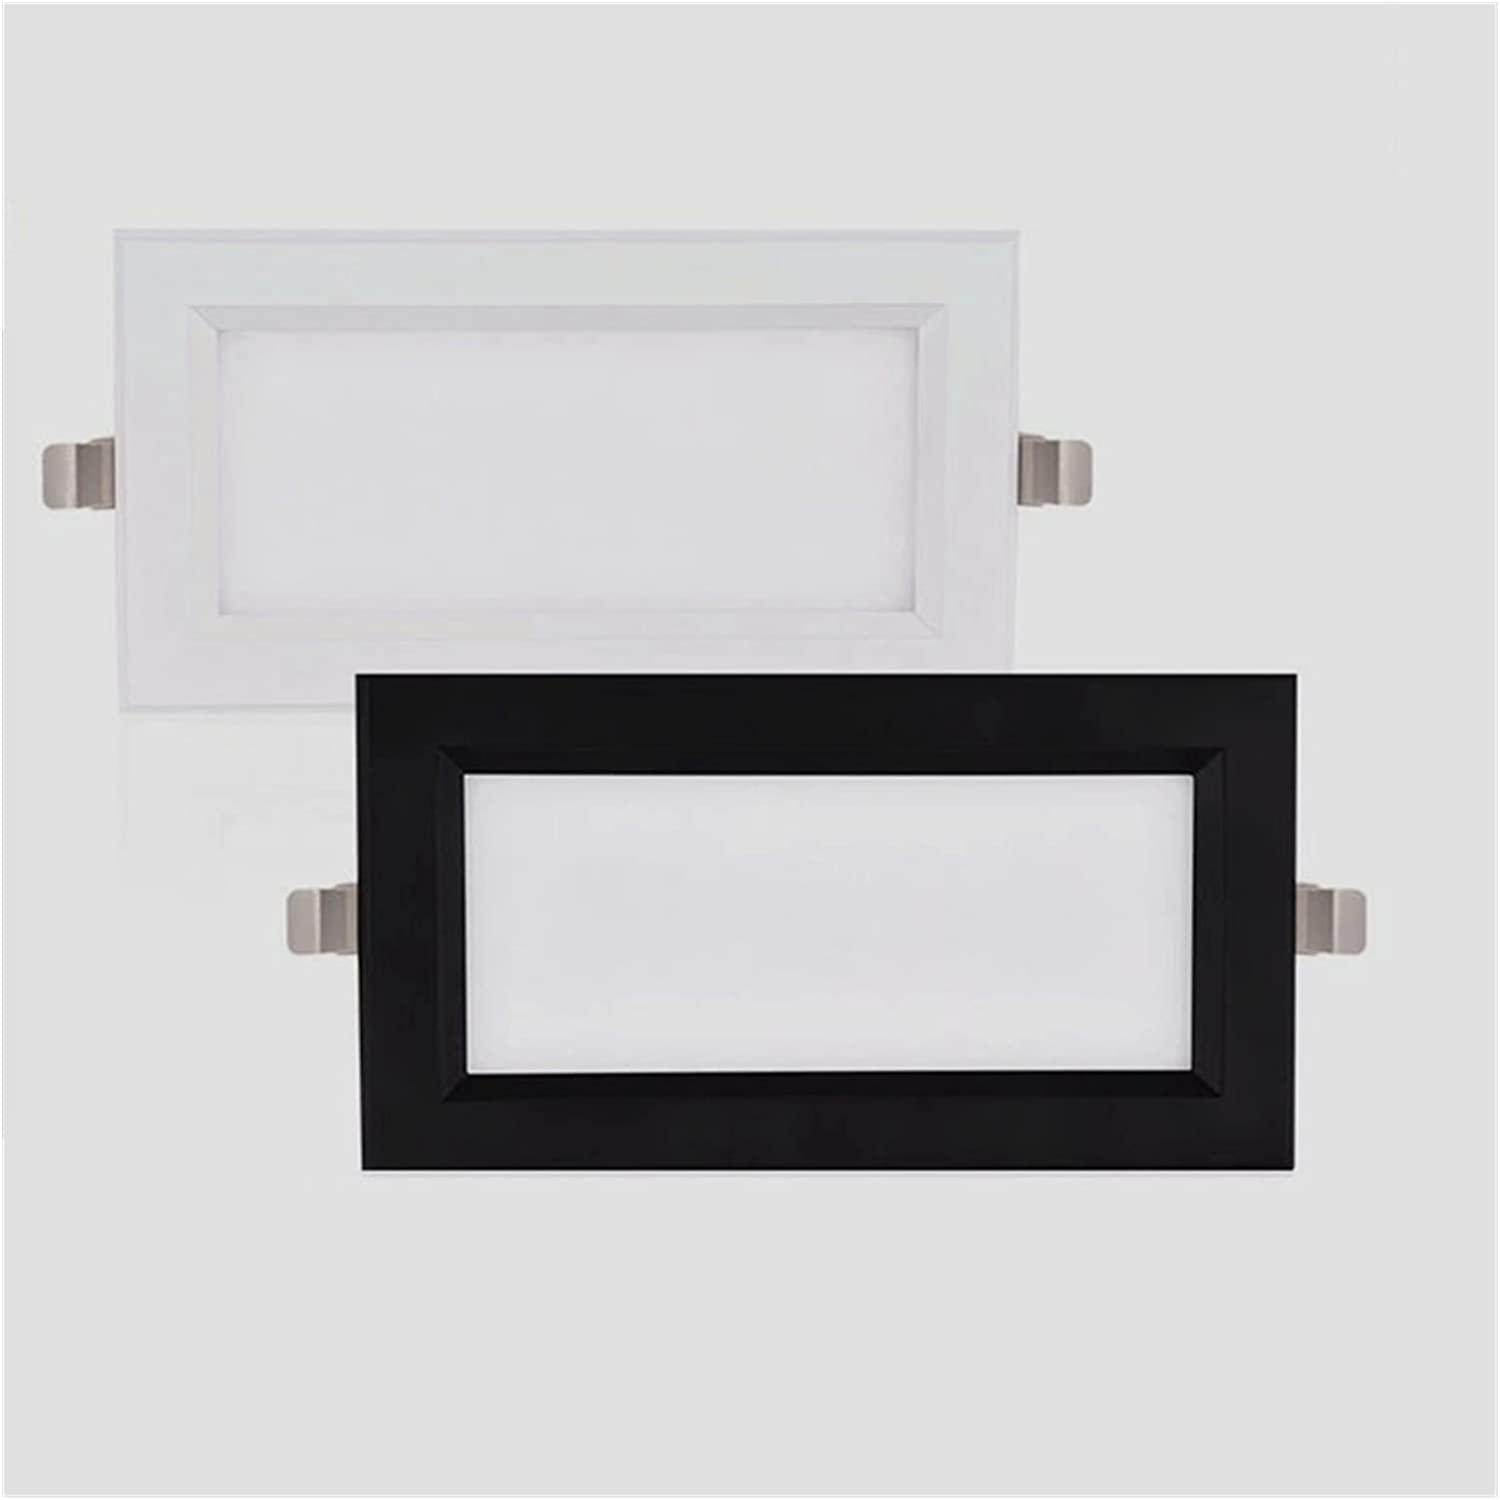 HSHHJSH Recessed Ceiling Downlight Branded goods Outstanding LED Panel Dimmable Spotlights